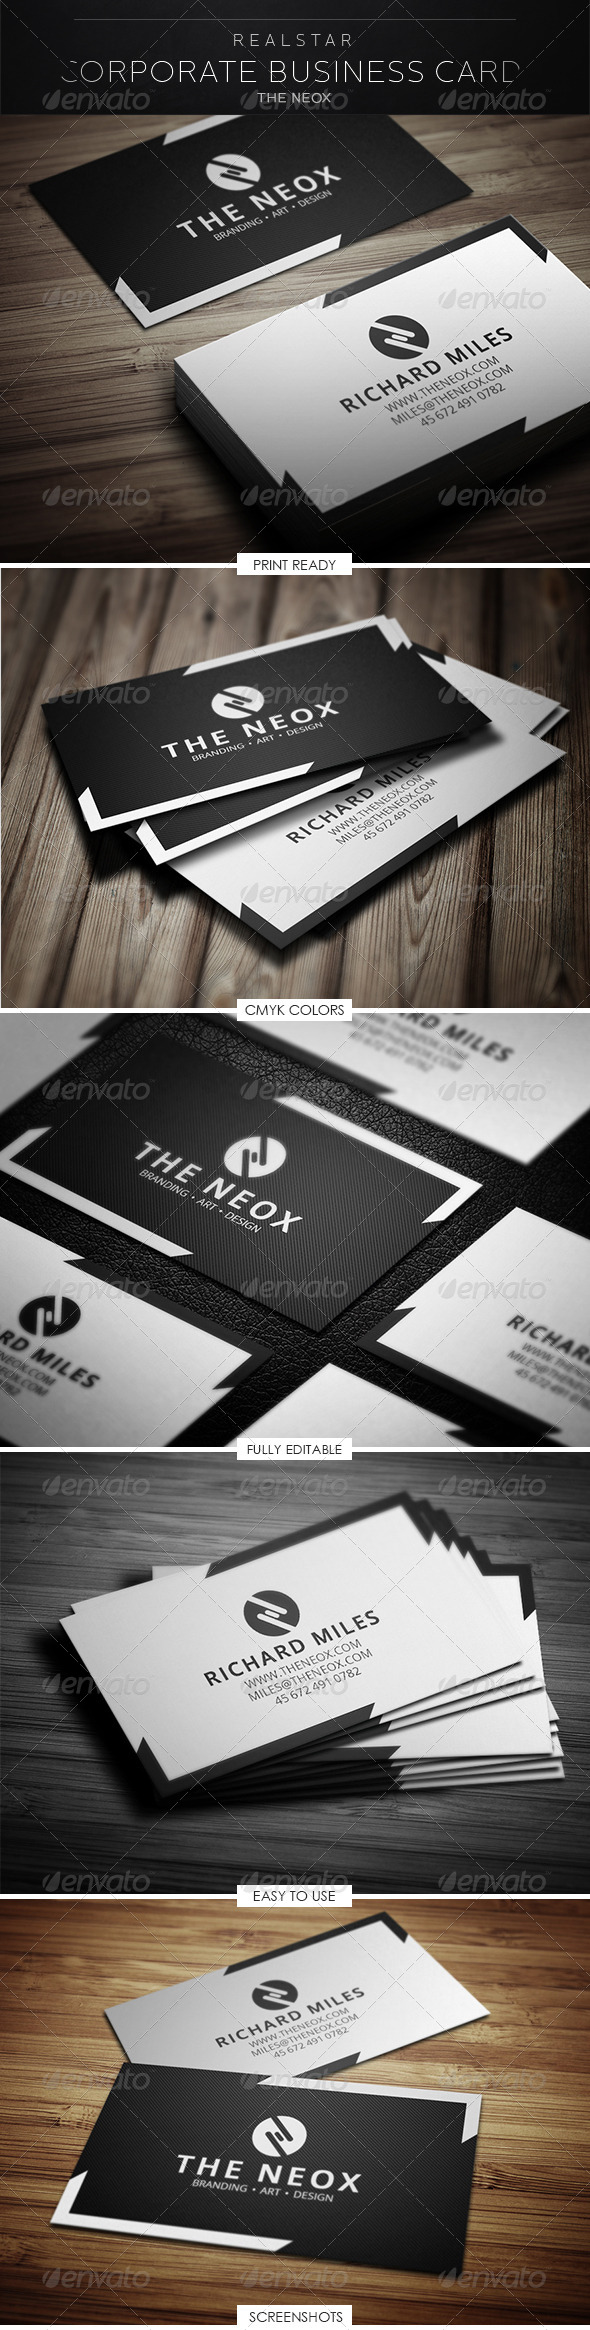 GraphicRiver The Neox Corporate Business Card 5287983